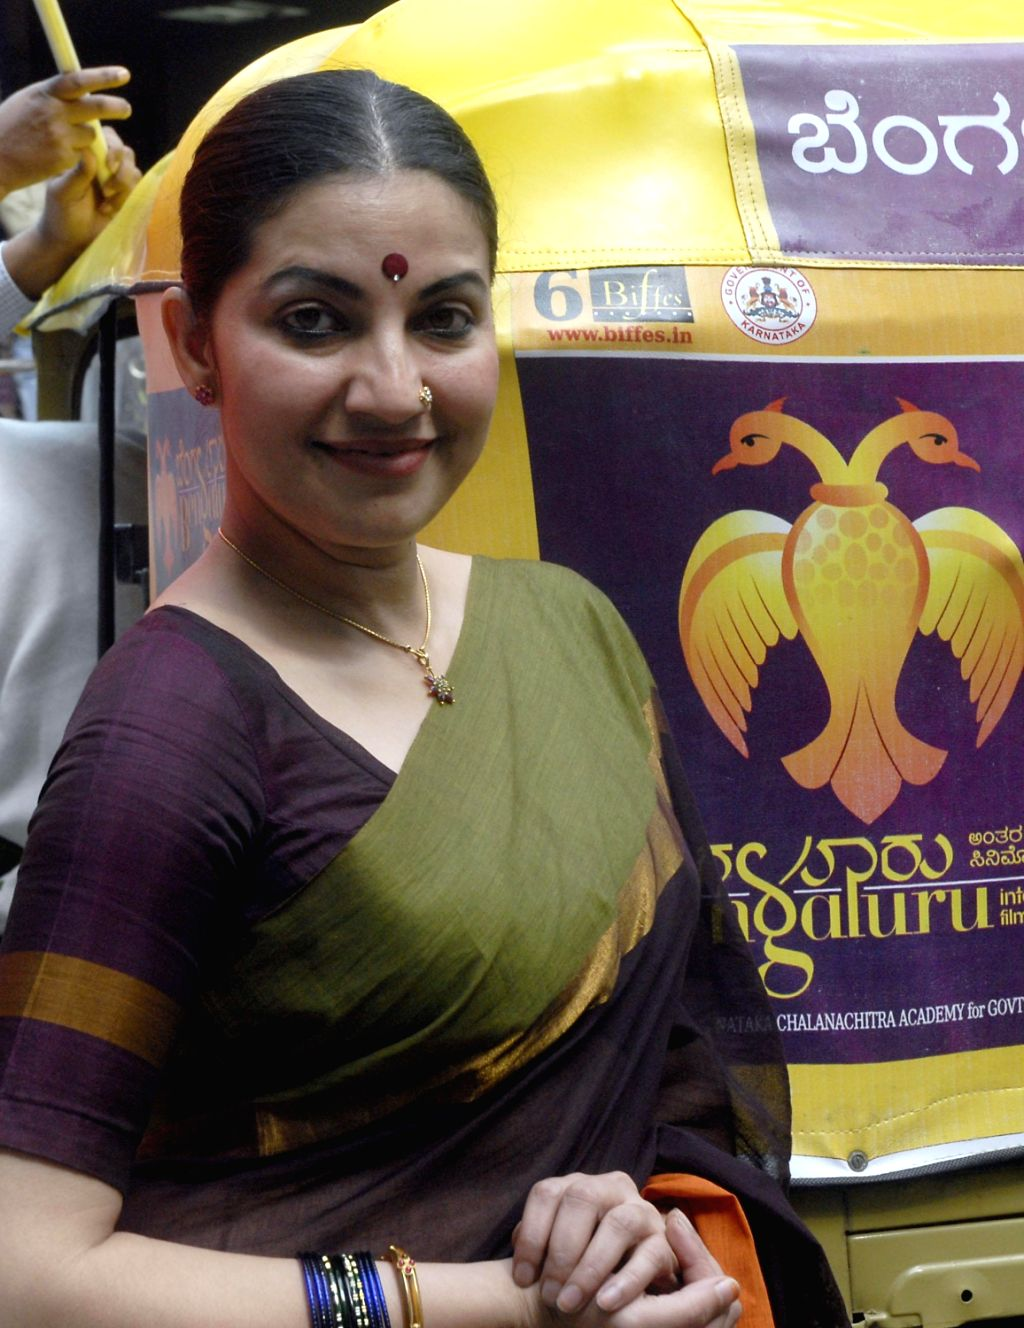 Actress Bhavana launches publicity vehicles of 6th edition of BIFFES - Bangalore International Film Festival at Information Department in Bangalore on Dec.13, 2013. - Bhavana